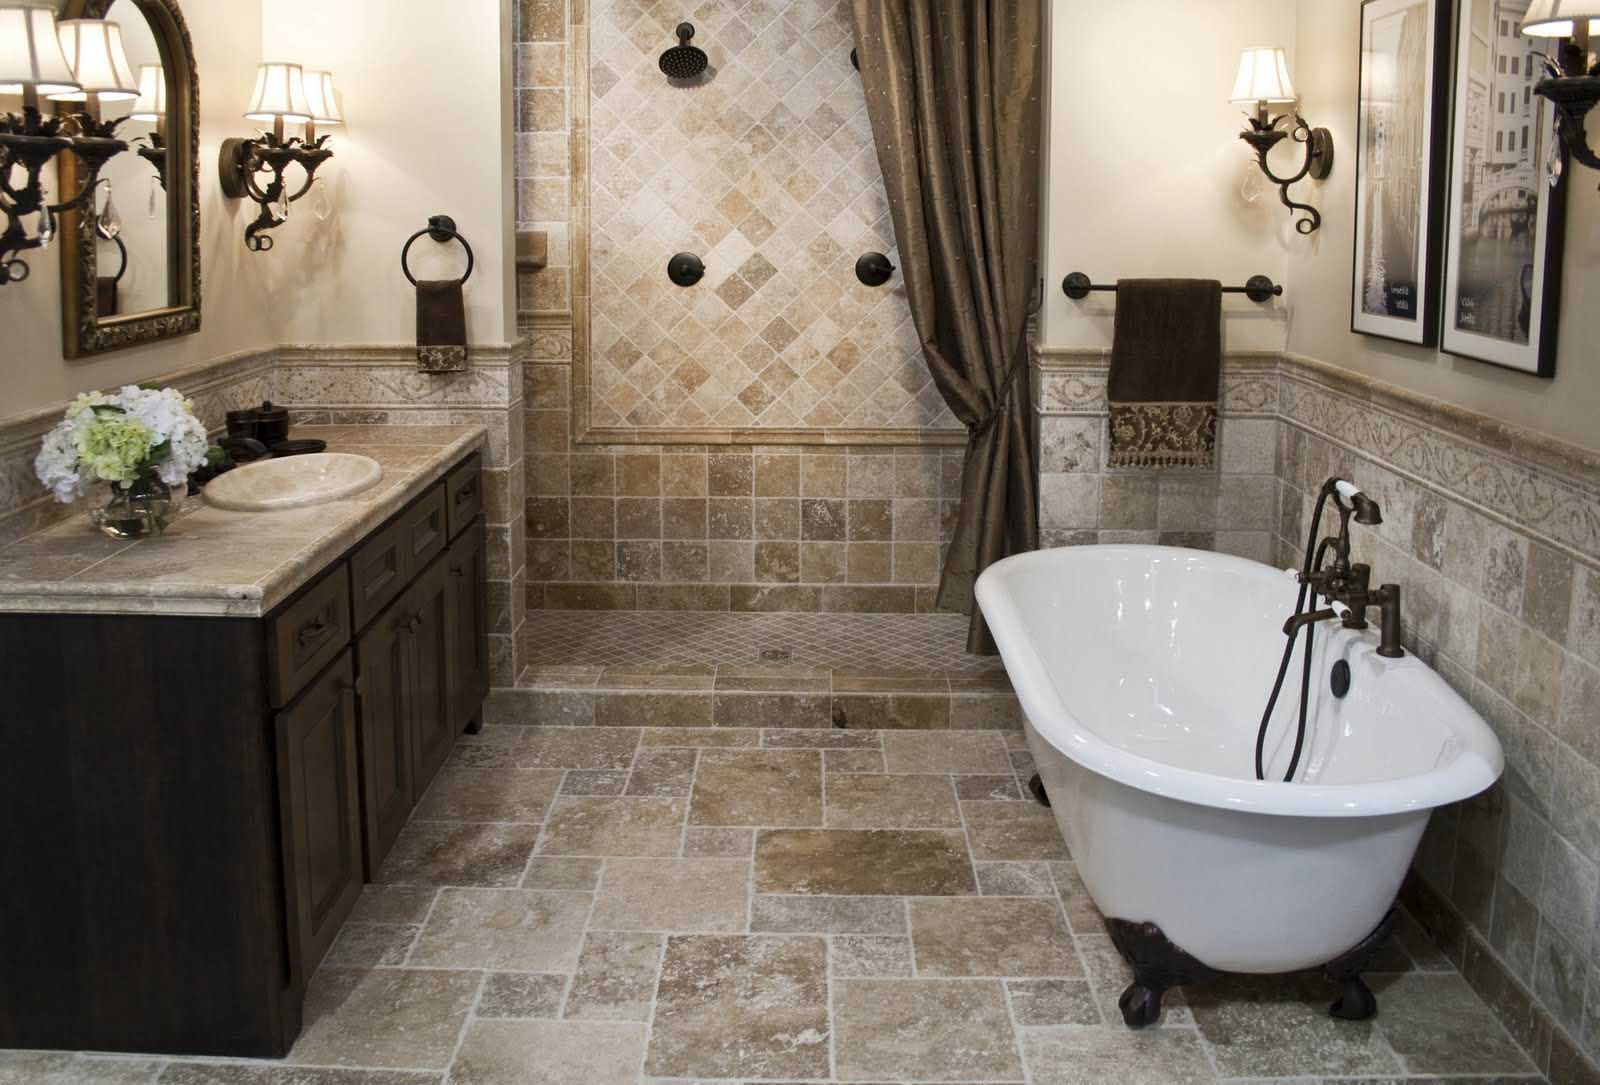 25 Bathroom Ideas For Small Spaces on beautiful bath designs, beautiful computer designs, beautiful bathrooms on a budget, beautiful design line, kitchen designs, beautiful marble bathrooms, beautiful living room, beautiful house plans designs, beautiful clothing designs, beautiful attic designs, beautiful master bathrooms, beautiful tree house designs, beautiful pantry designs, beautiful water designs, beautiful bathrooms on pinterest, beautiful stair designs, bedroom designs, beautiful elegant furniture, beautiful bird houses designs, beautiful modern sofa designs,